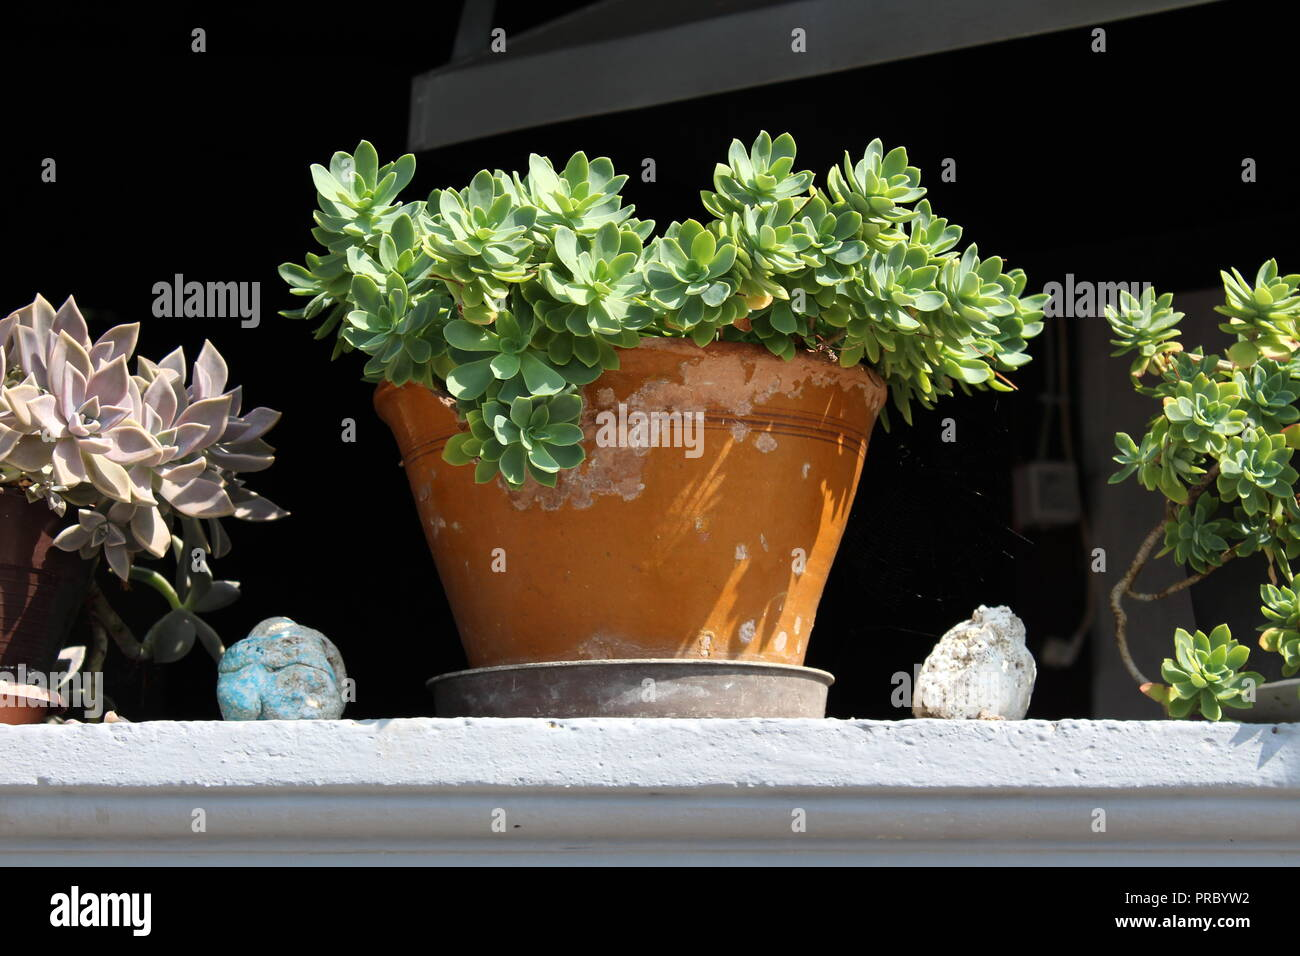 Sedum or Stonecrop perennial leaf succulent with water-storing leaves plants growing from clay flower pots on top of stone balcony fence on warm sunny - Stock Image